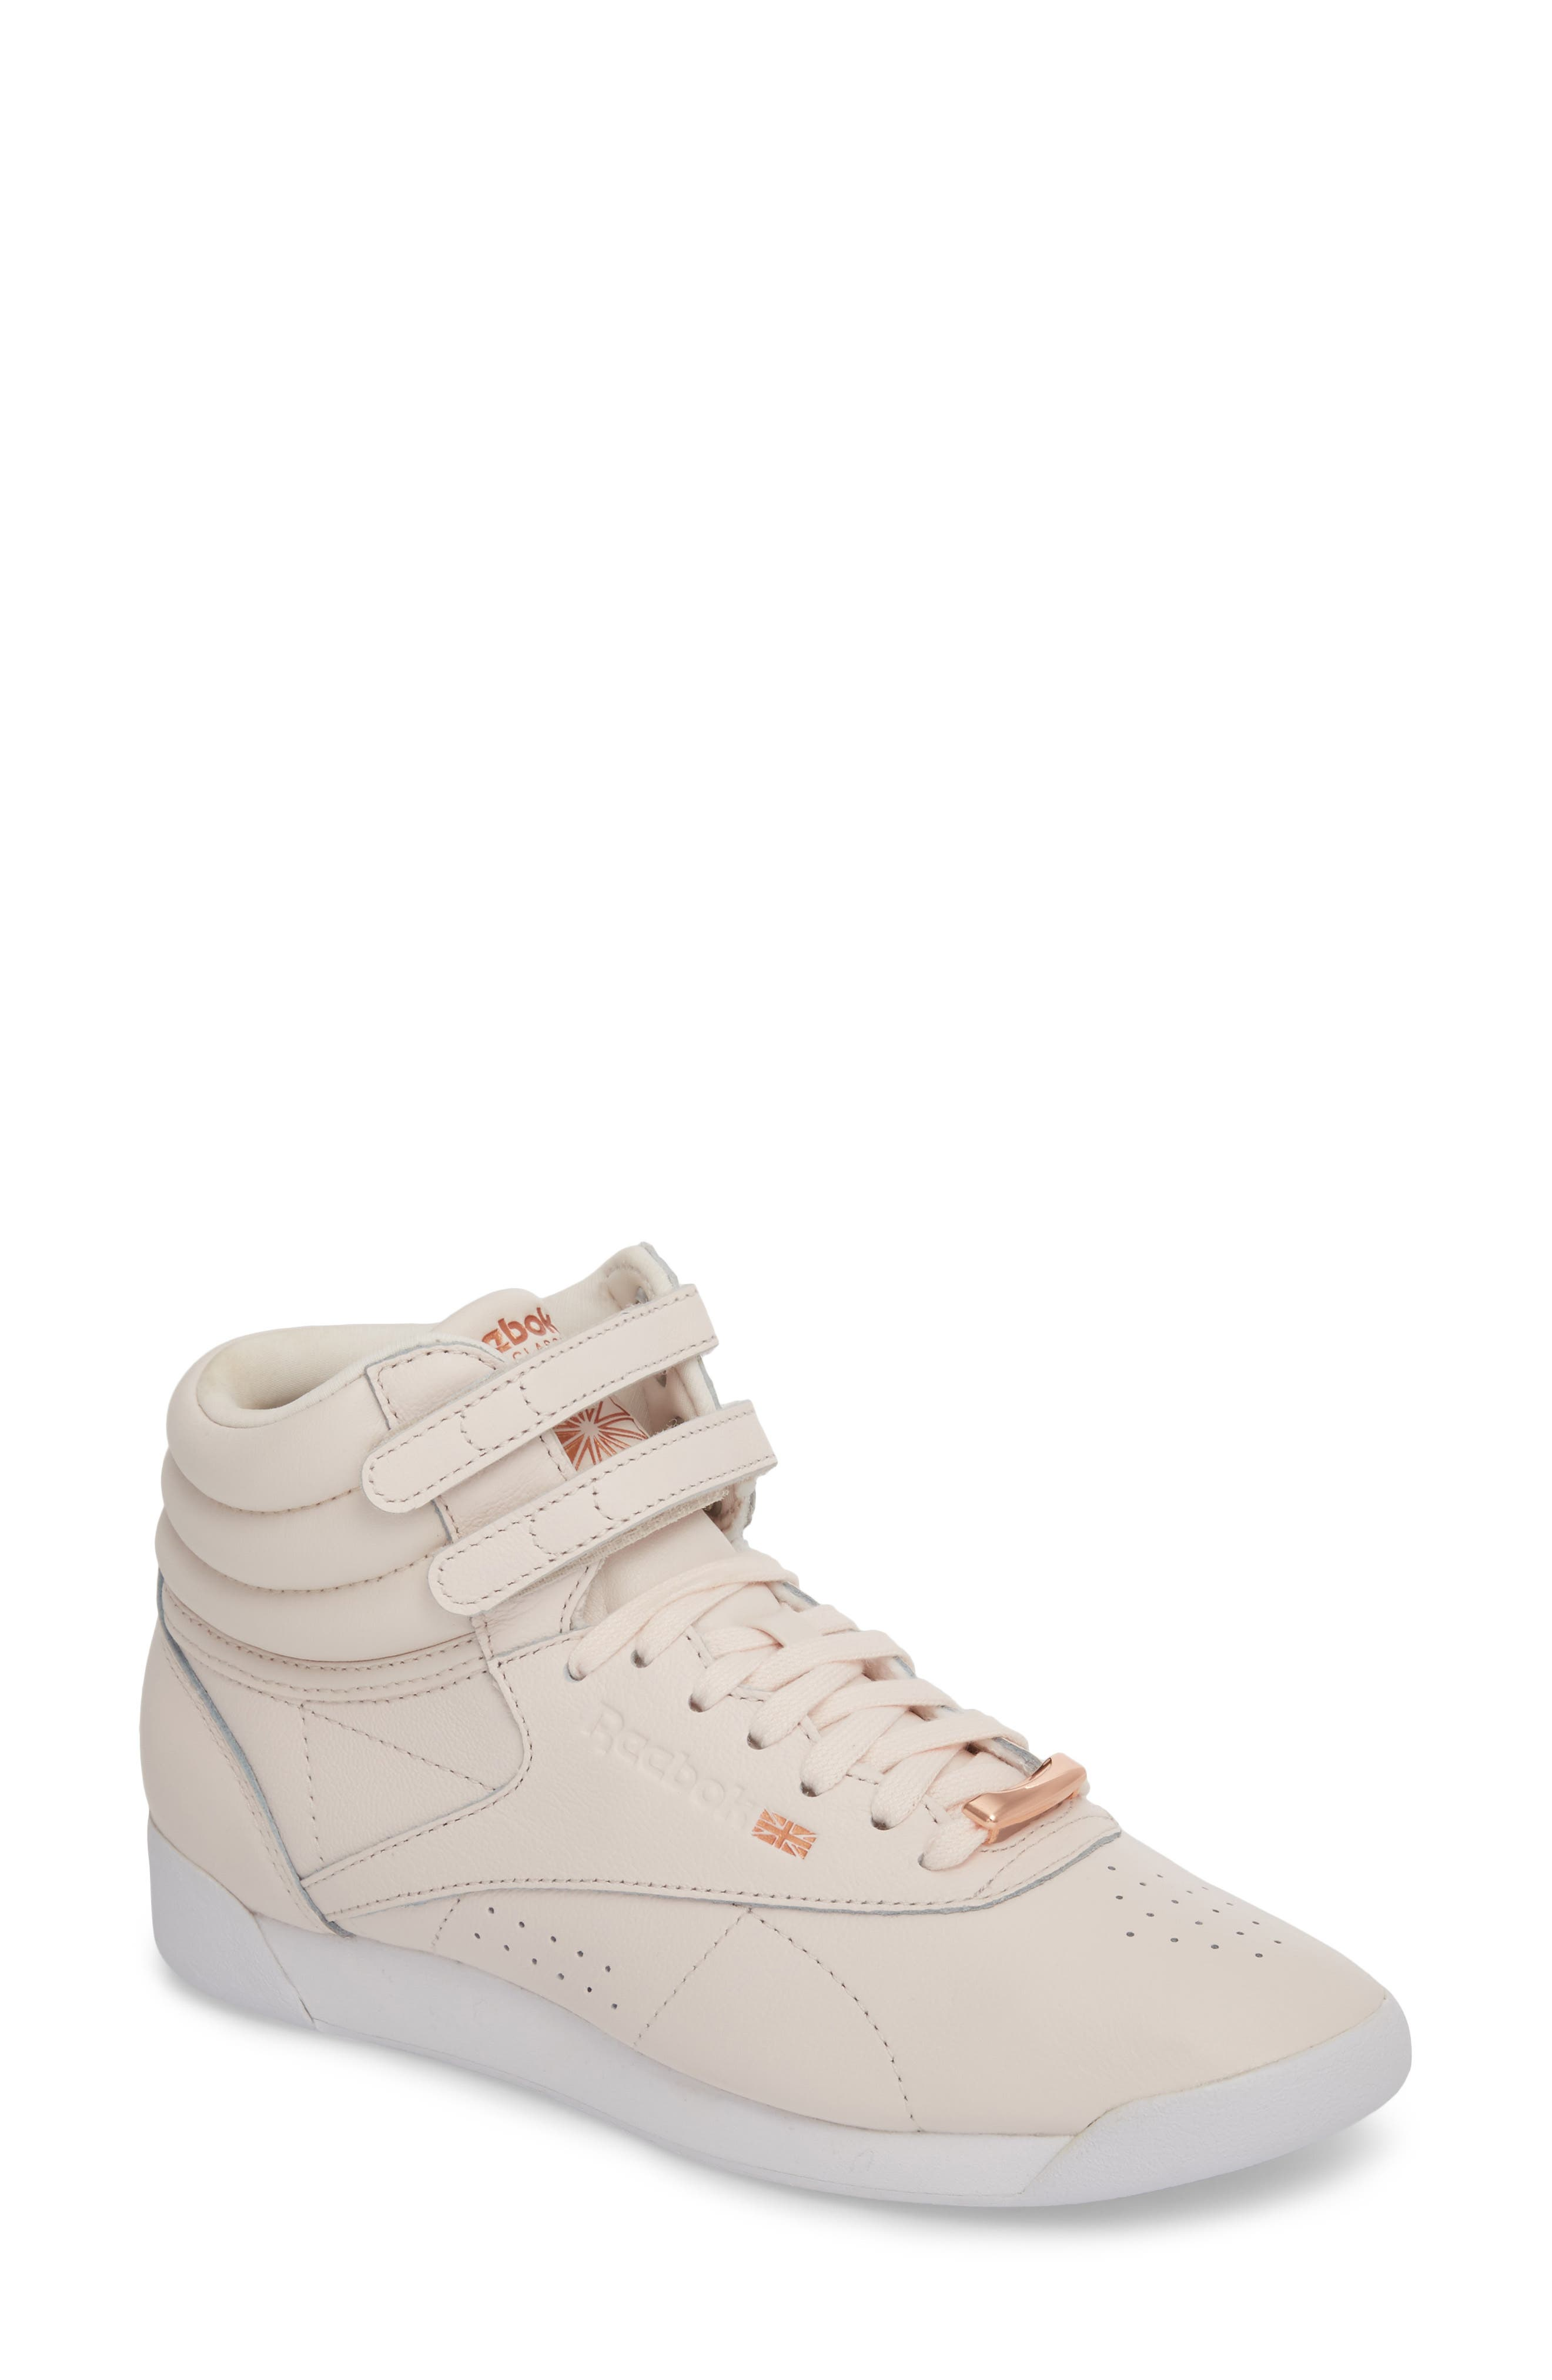 Freestyle Hi Muted Sneaker,                         Main,                         color, Pale Pink/ White/ Cool Shadow